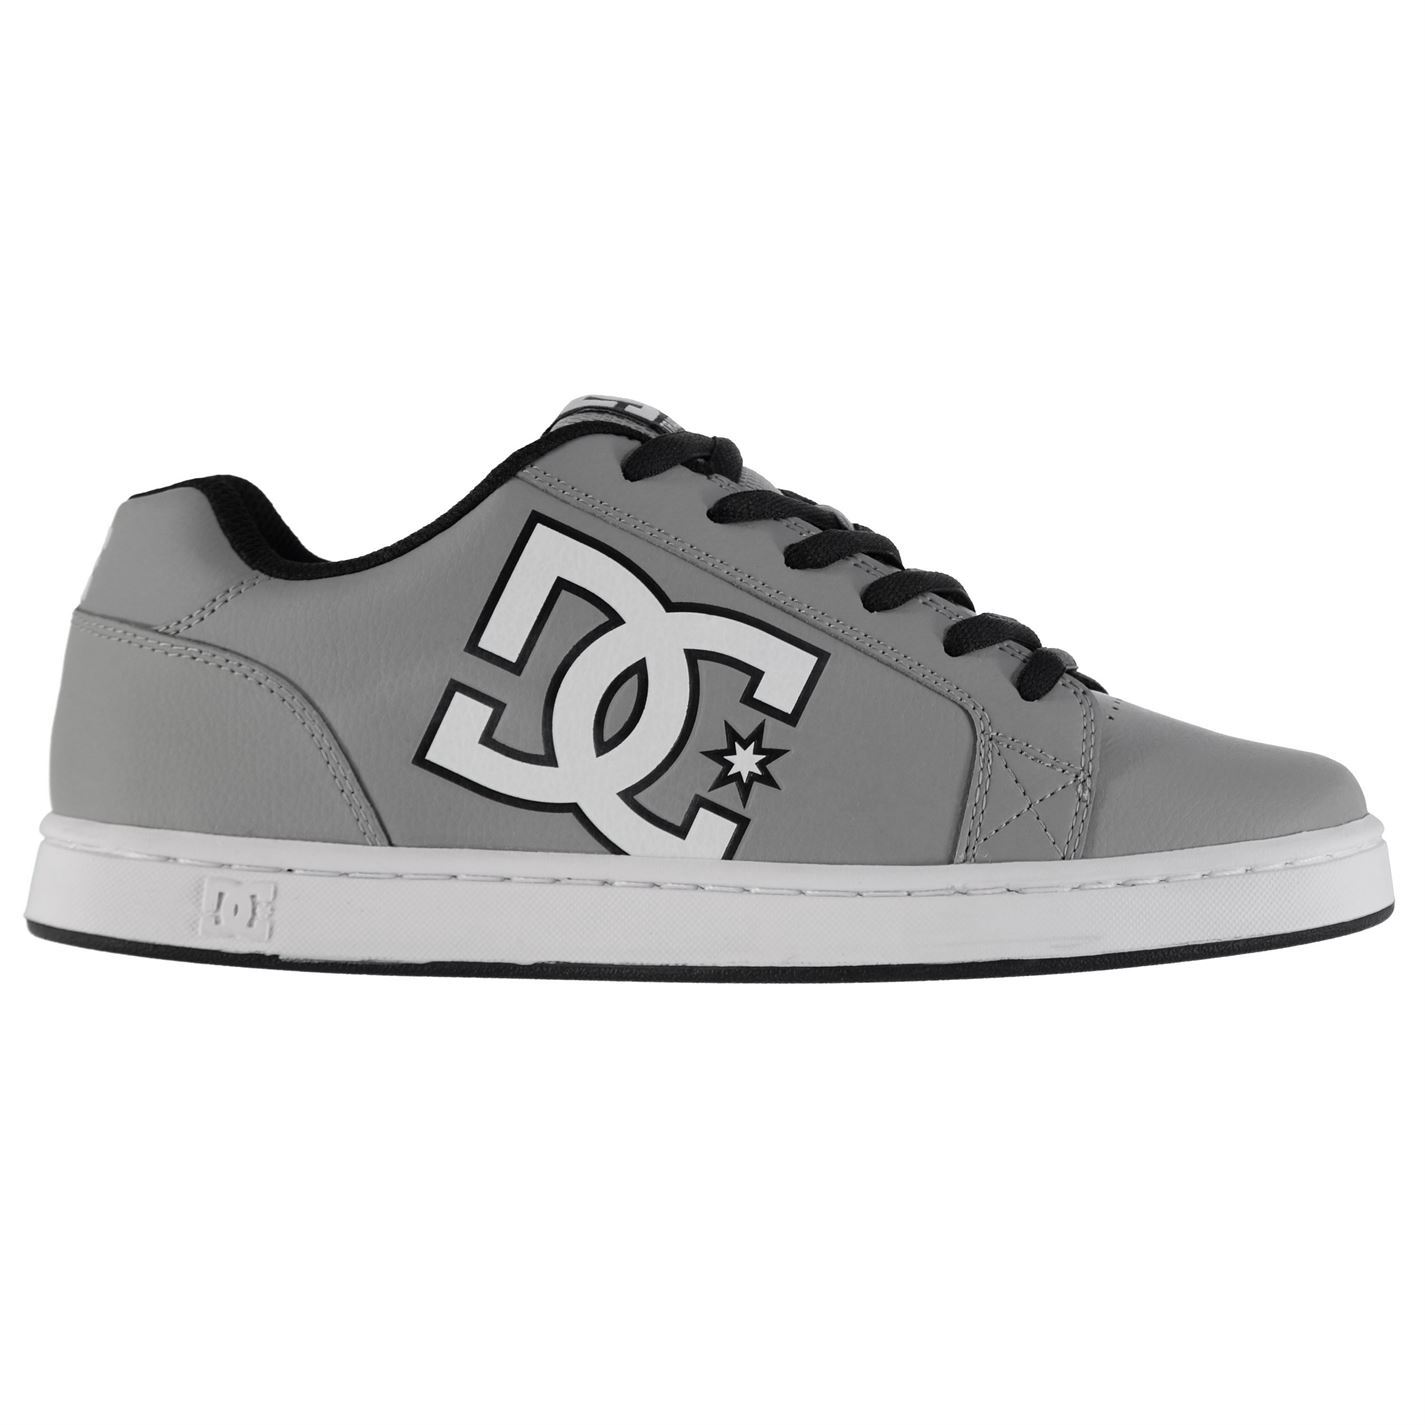 DC Padded  Uomo Serial Graffik Skate Schuhes Lace Up Padded DC Ankle Collar Comfortable Fit b4395f